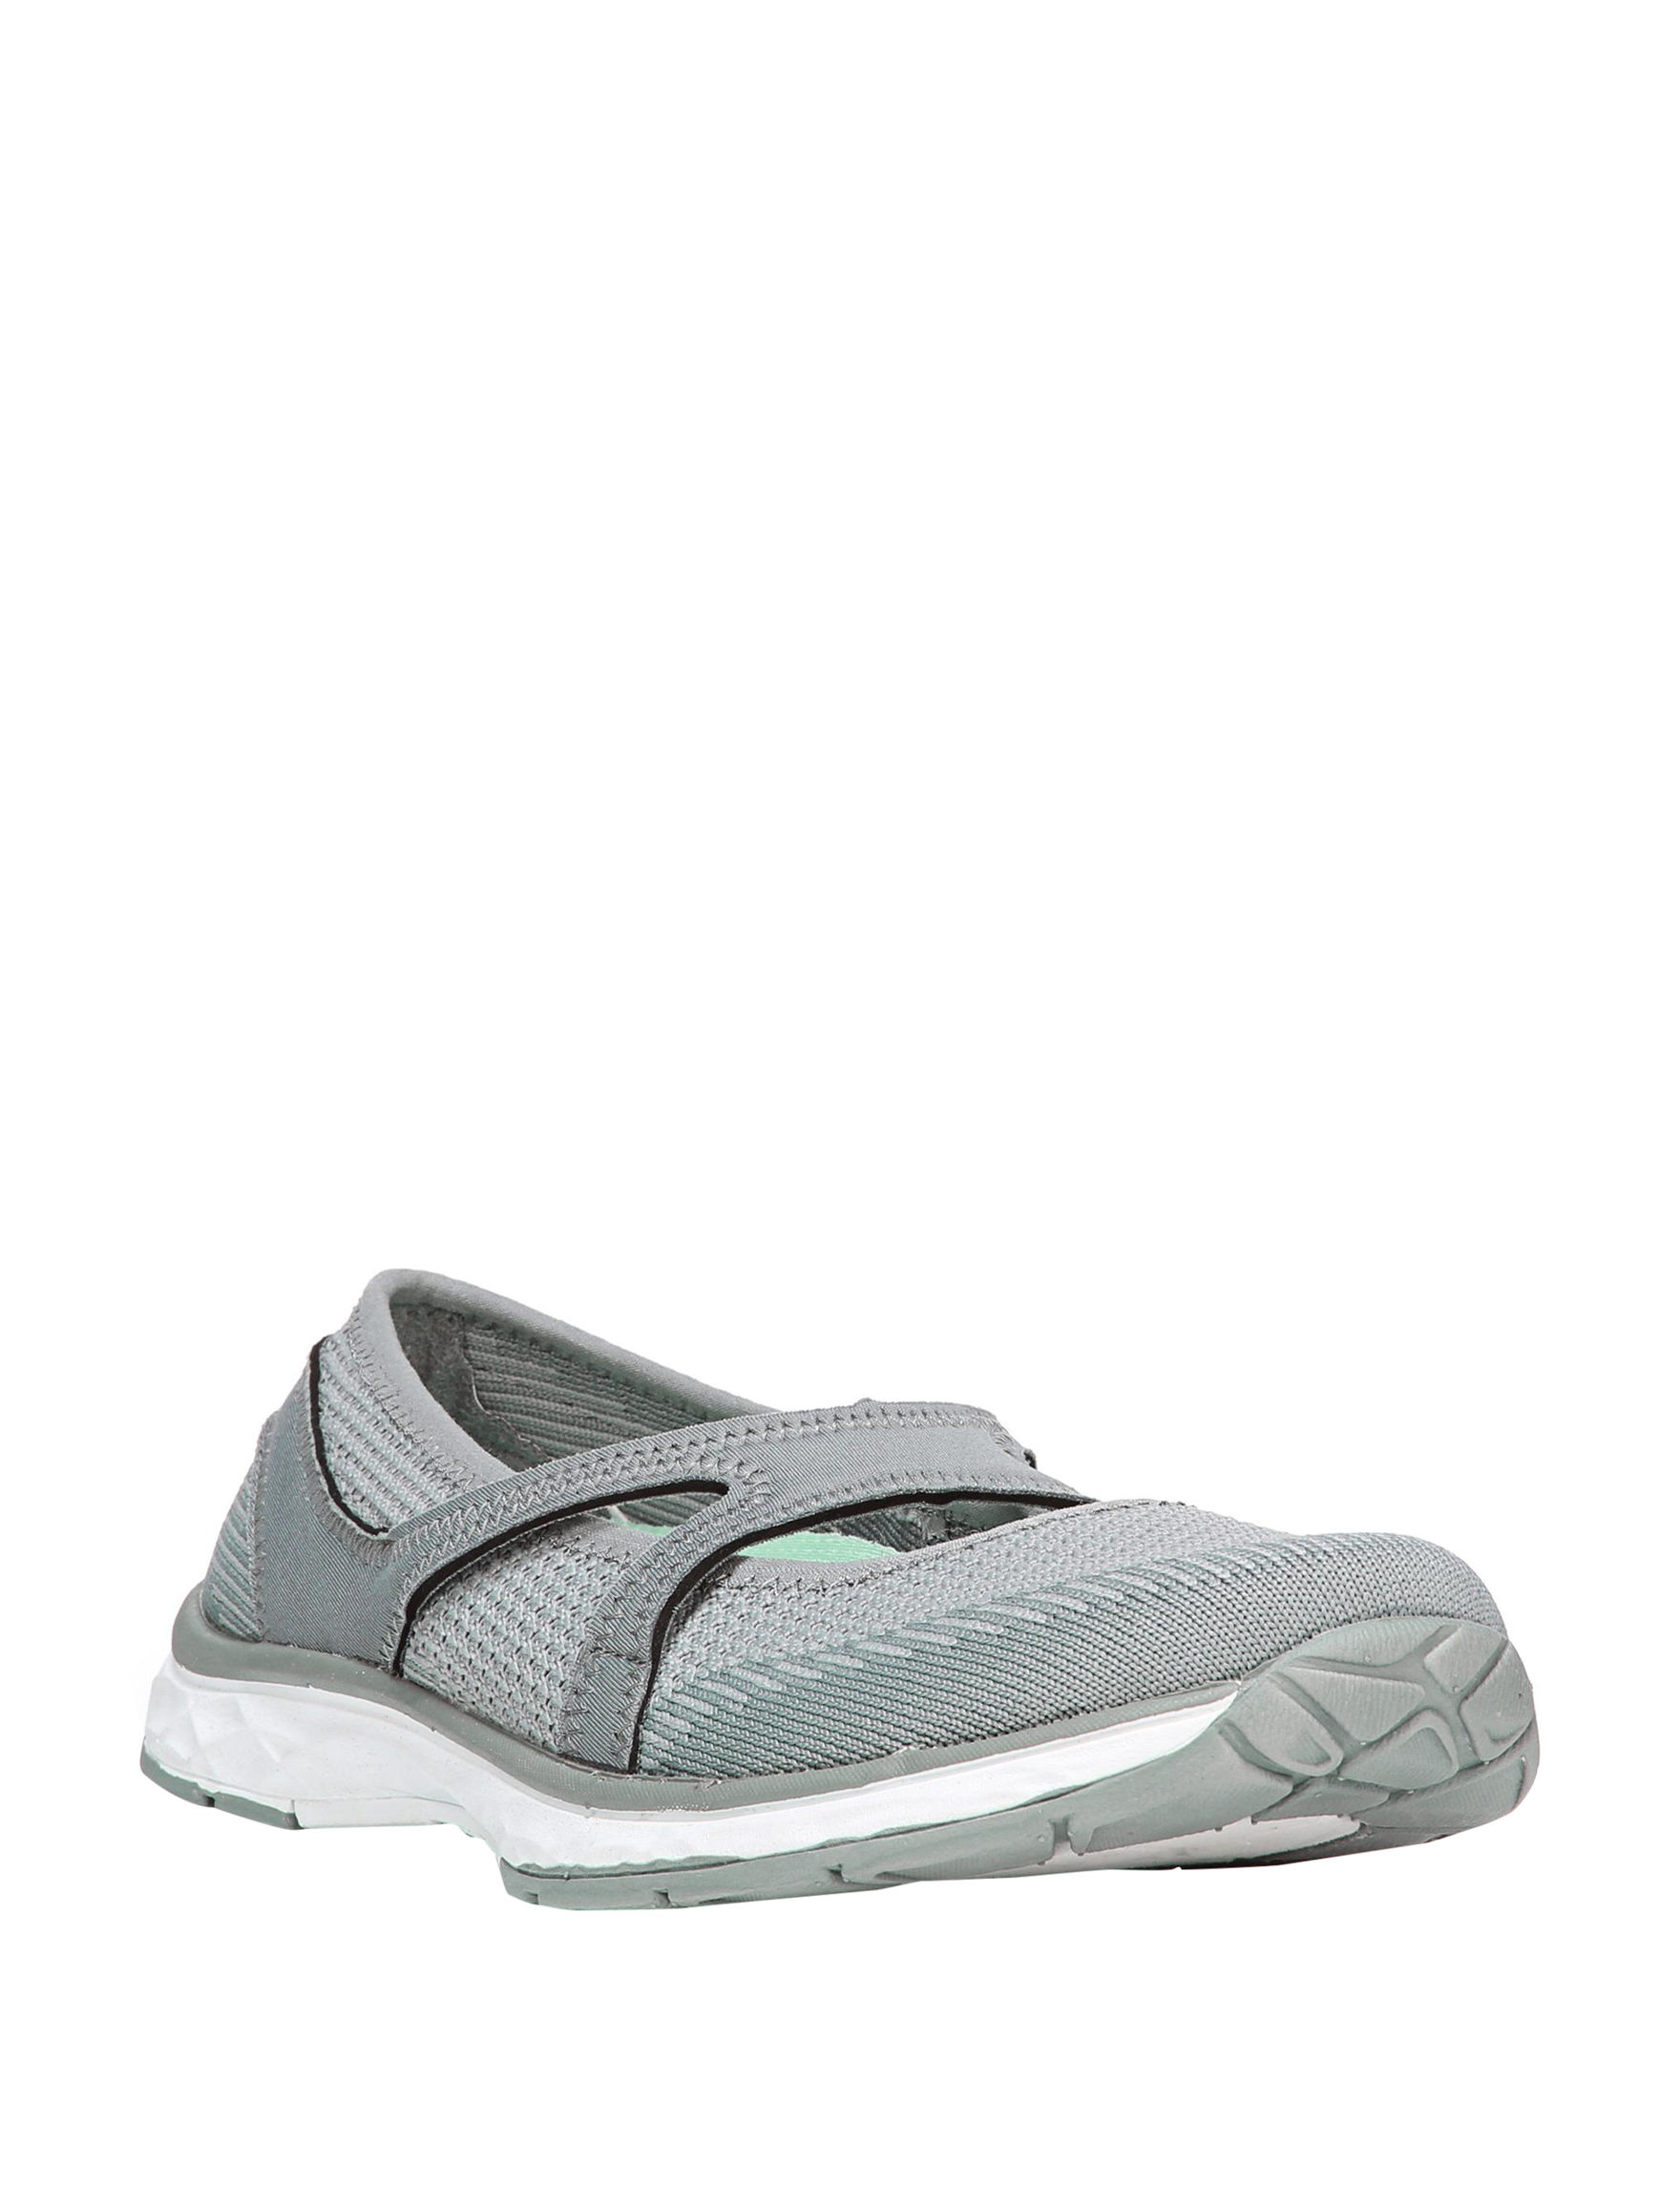 Dr. Scholl's Charcoal